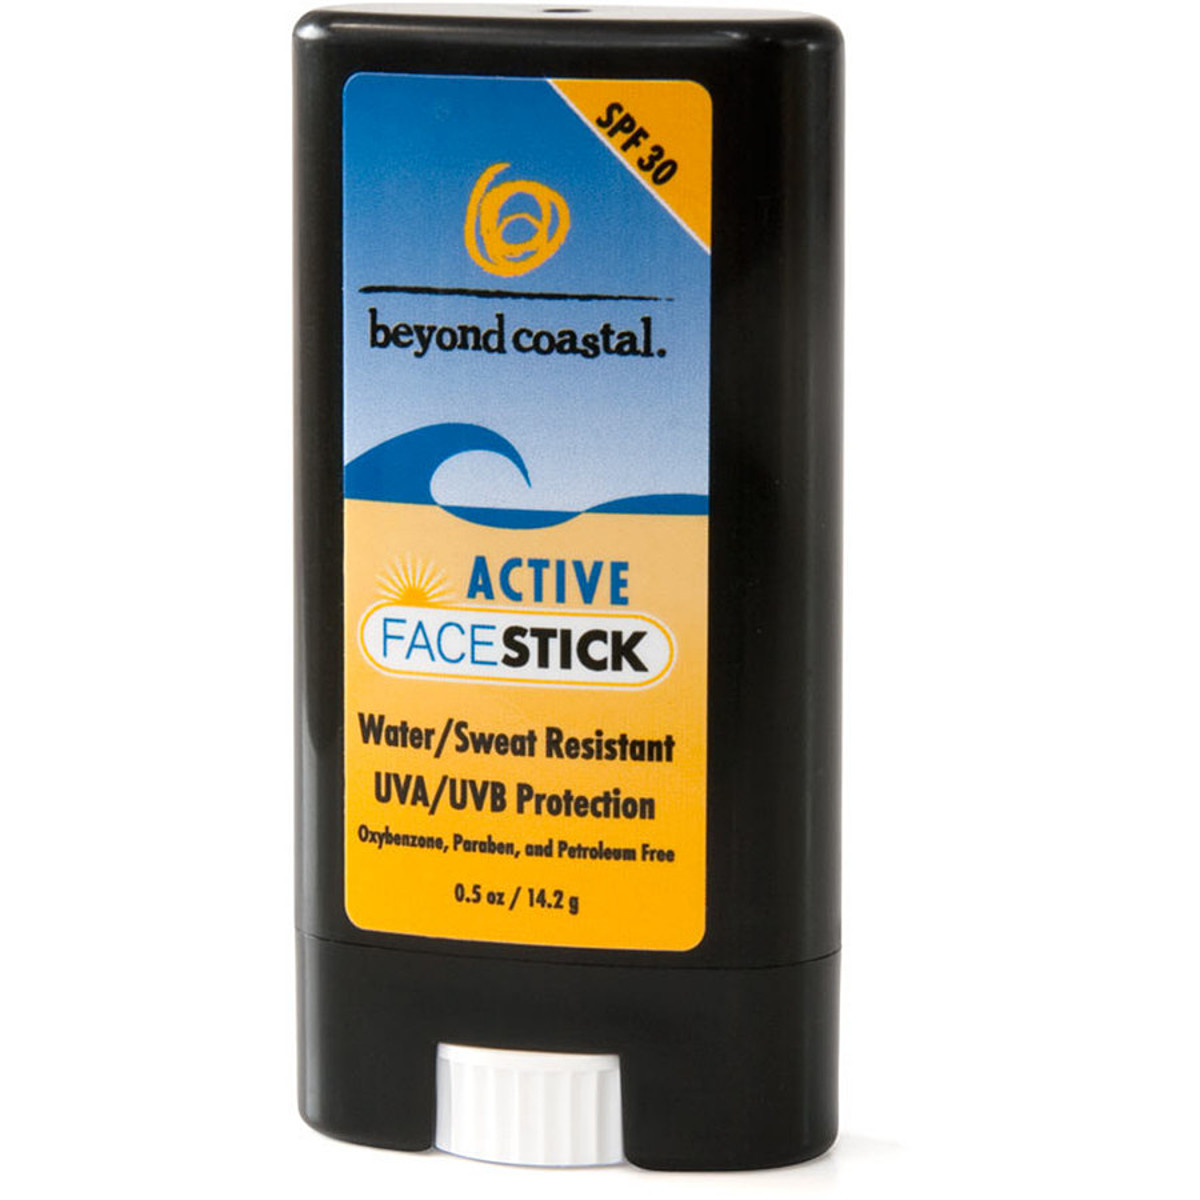 Beyond Coastal Active Face Stick SPF 30